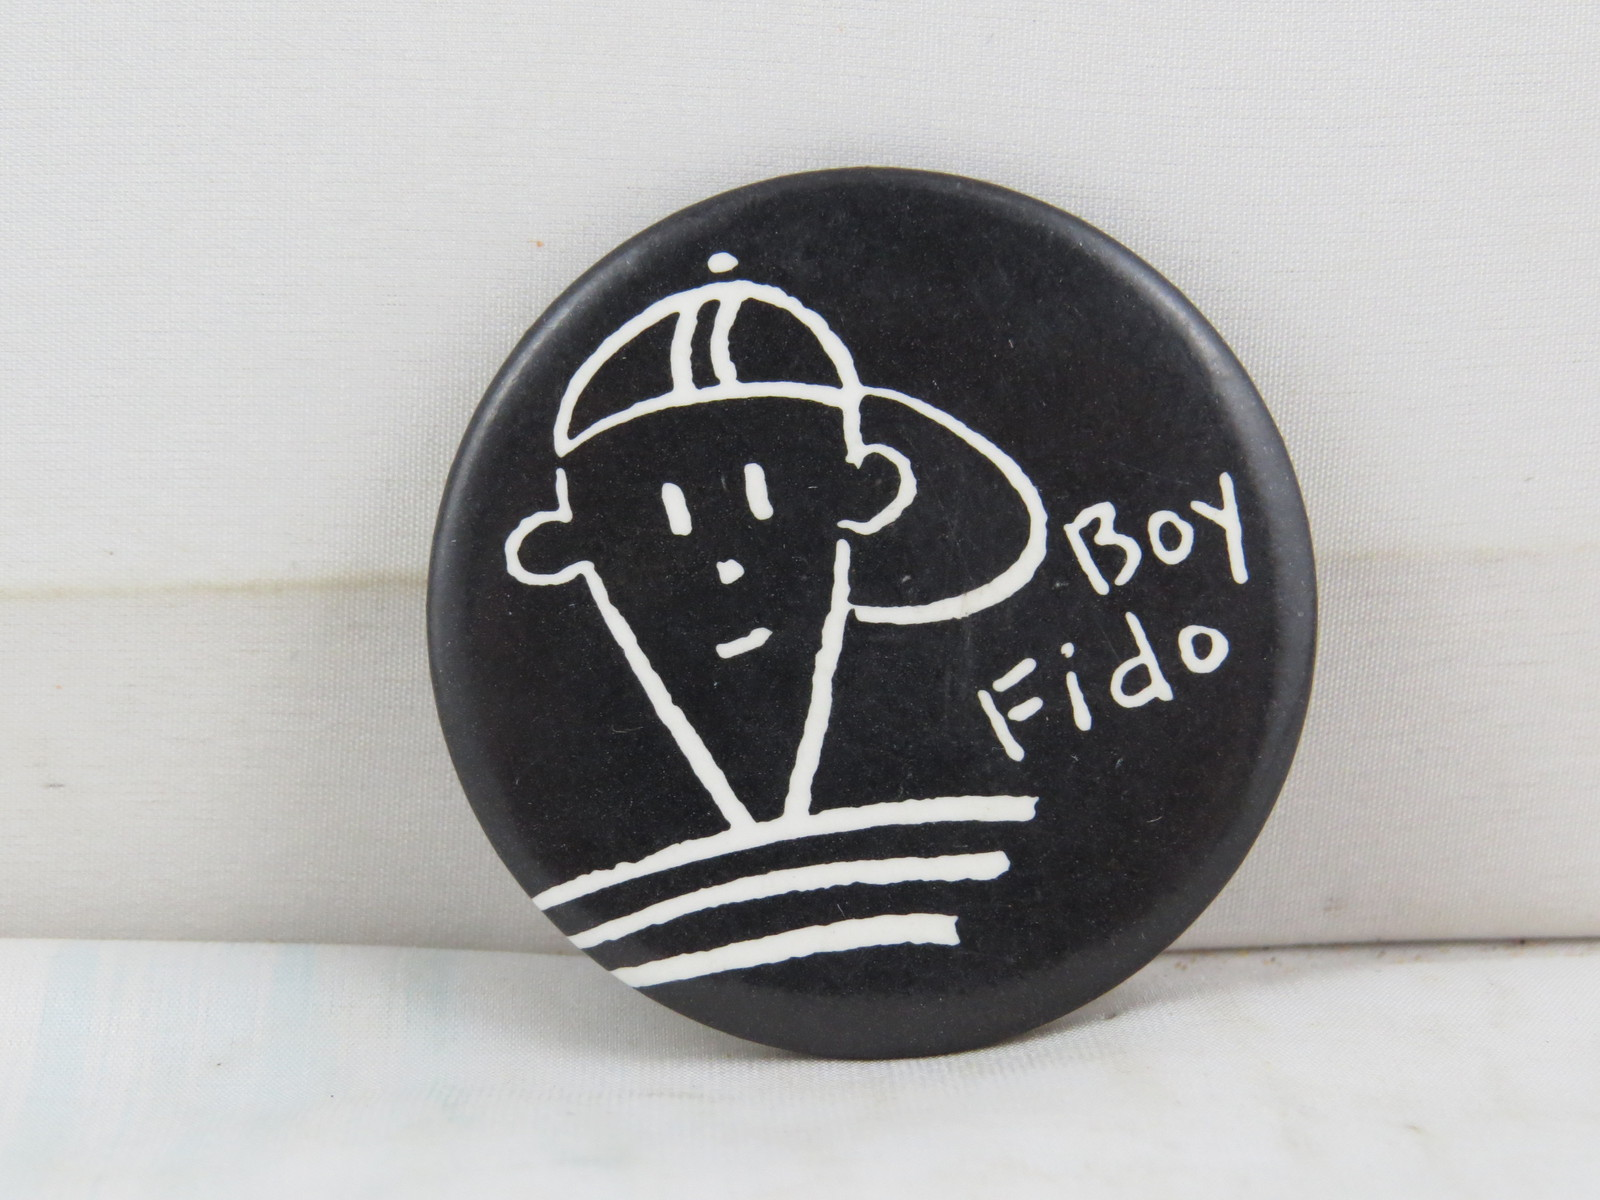 Primary image for Vintage Soda Pin - Boy Fido 7 Up - Celluloid Pin